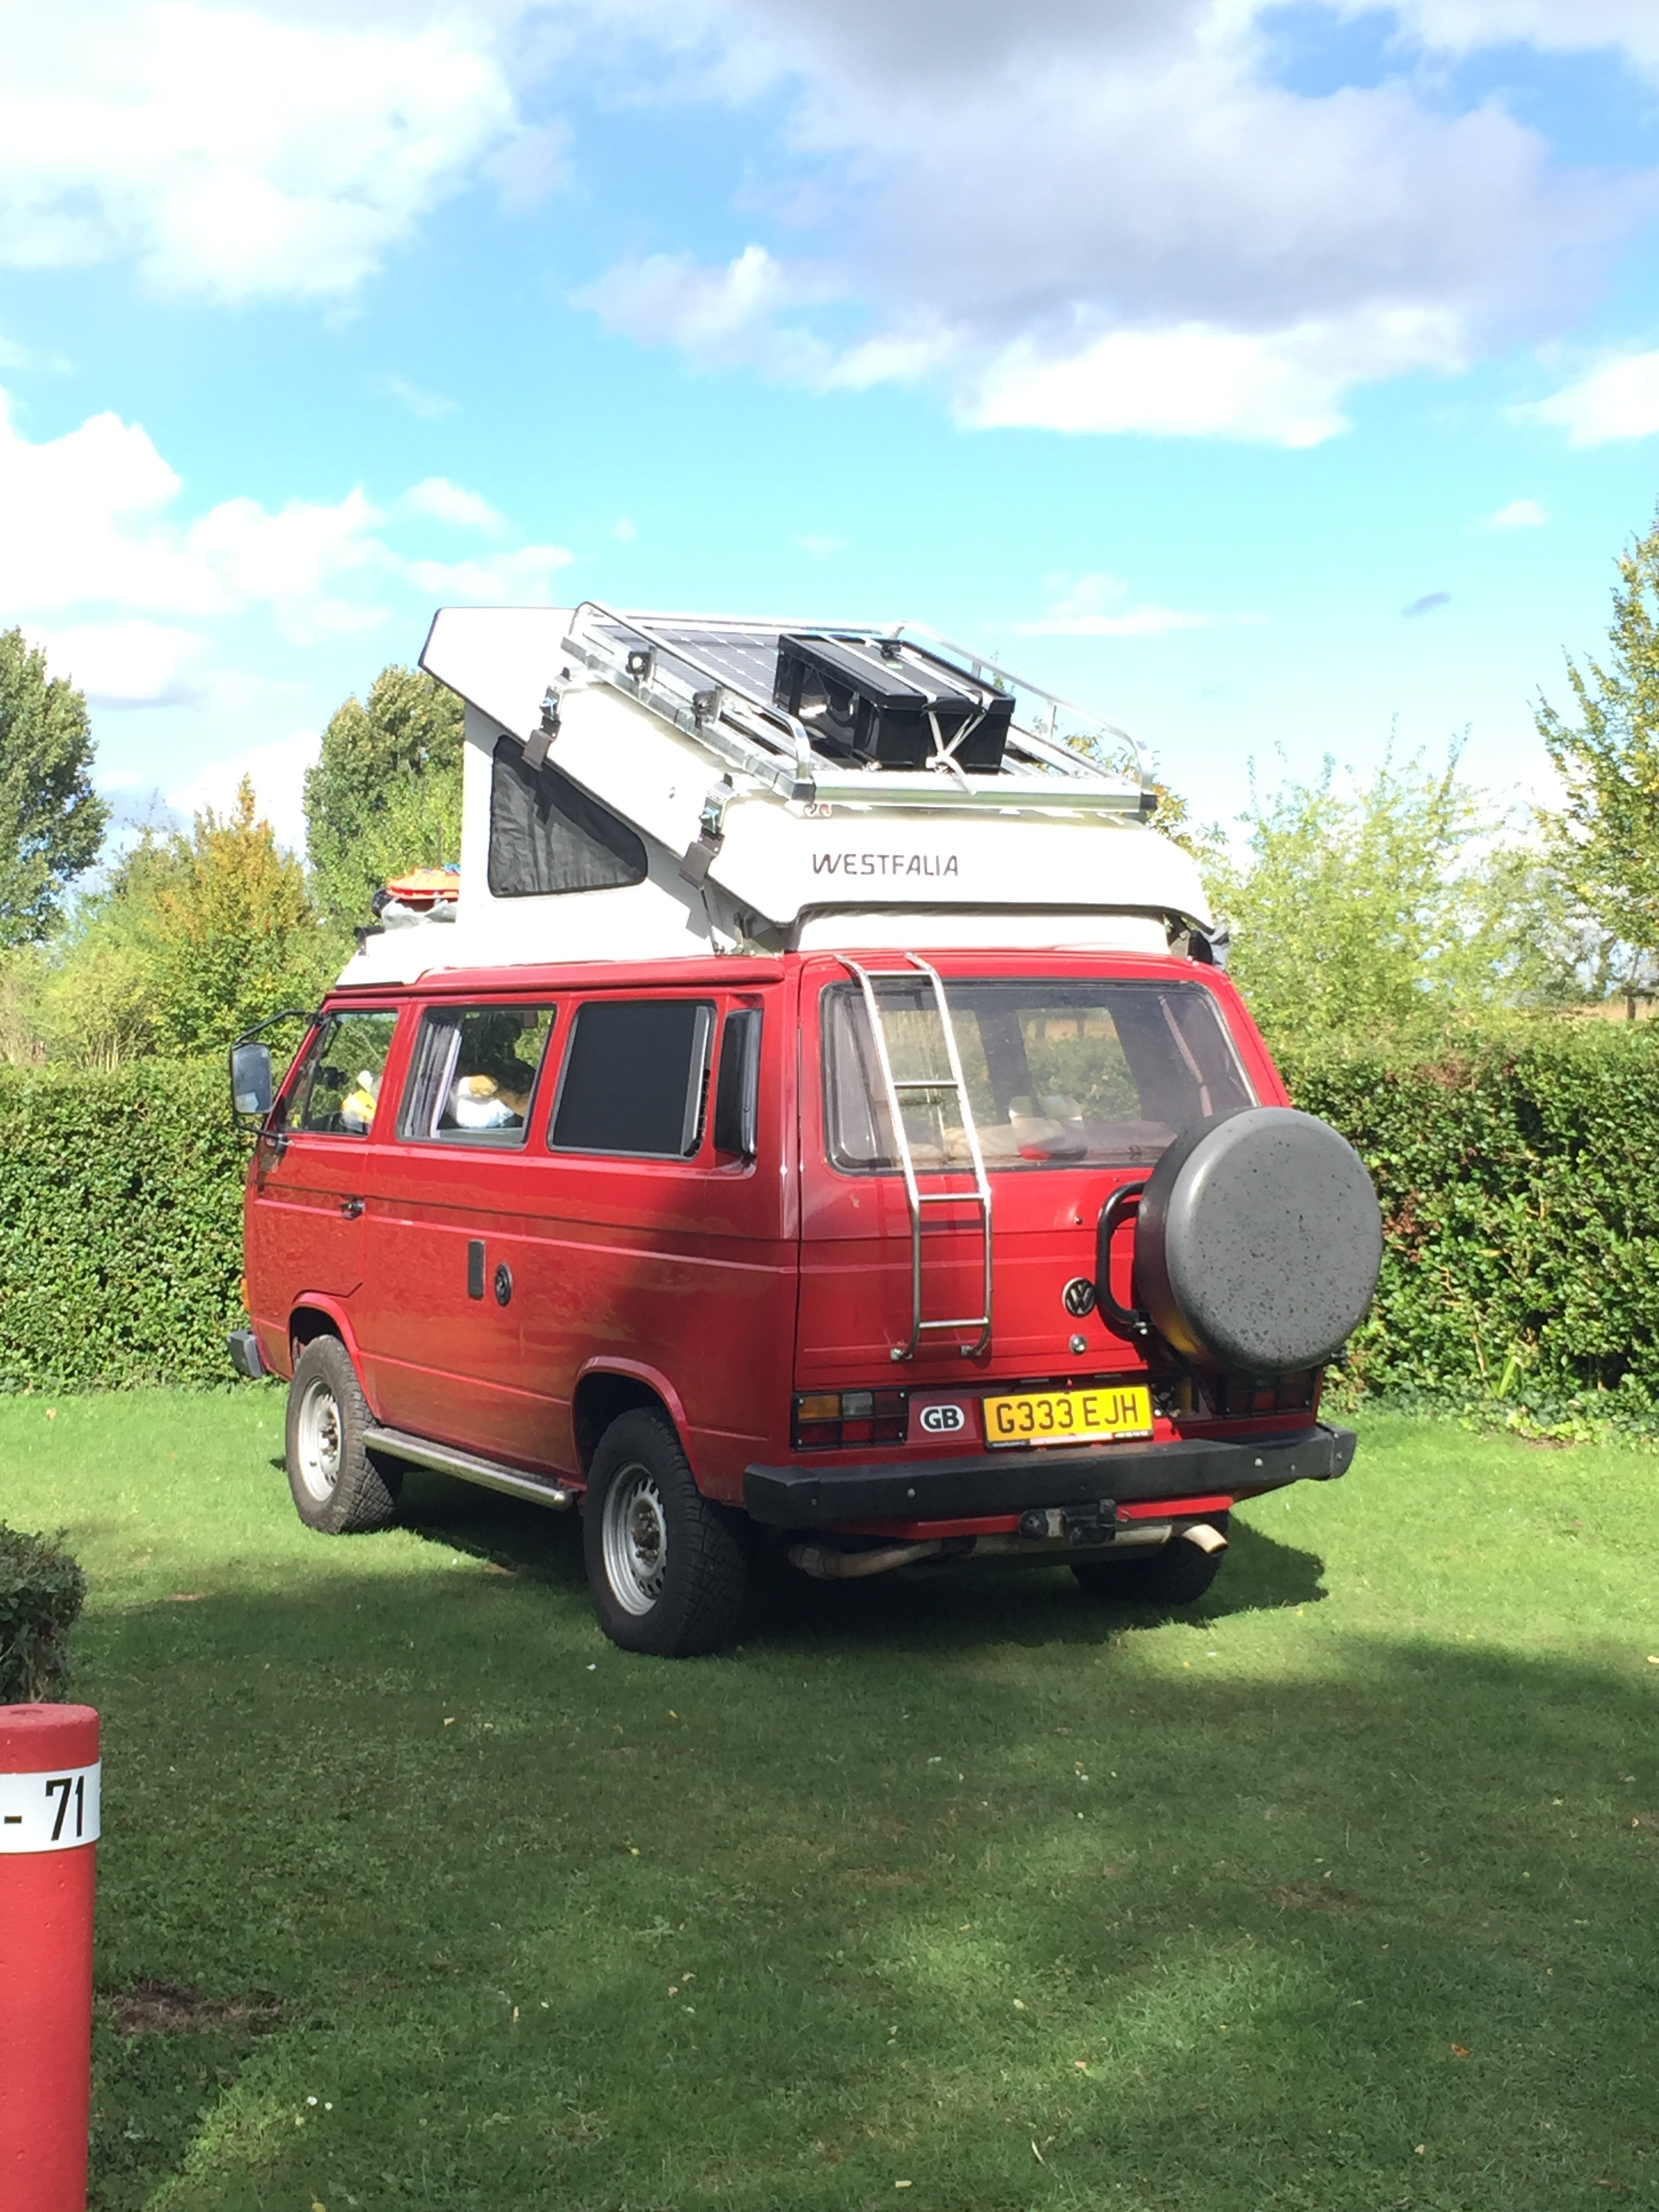 Diy Expedition Roof Rack System The Little Red Bus